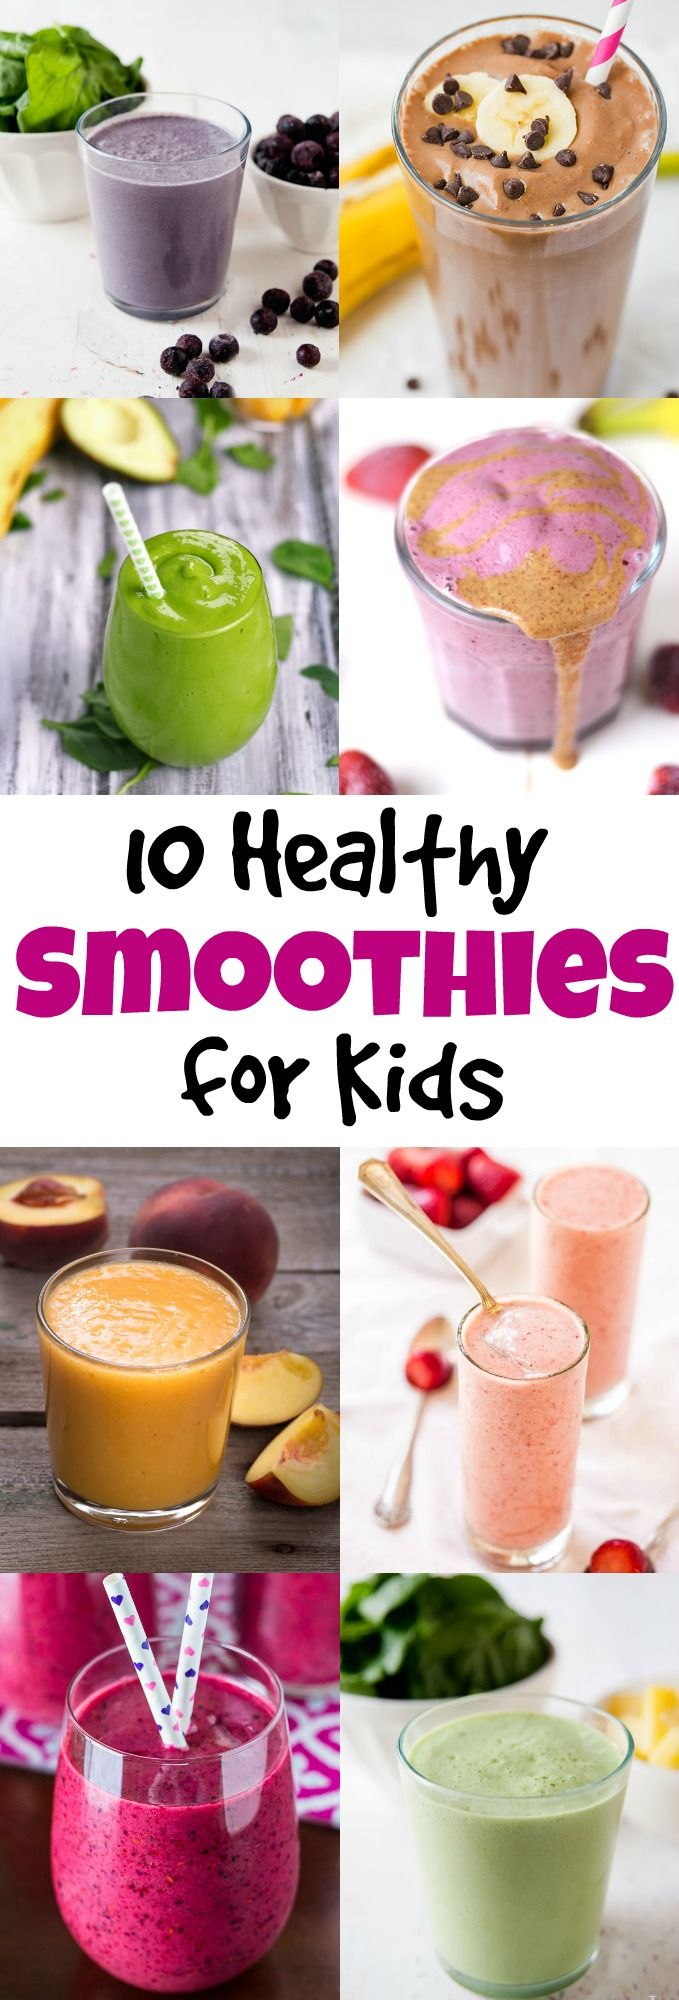 What better way to get more fruits and veggies in your kids' diet than a refreshing smoothie! Your kids will love these smoothies